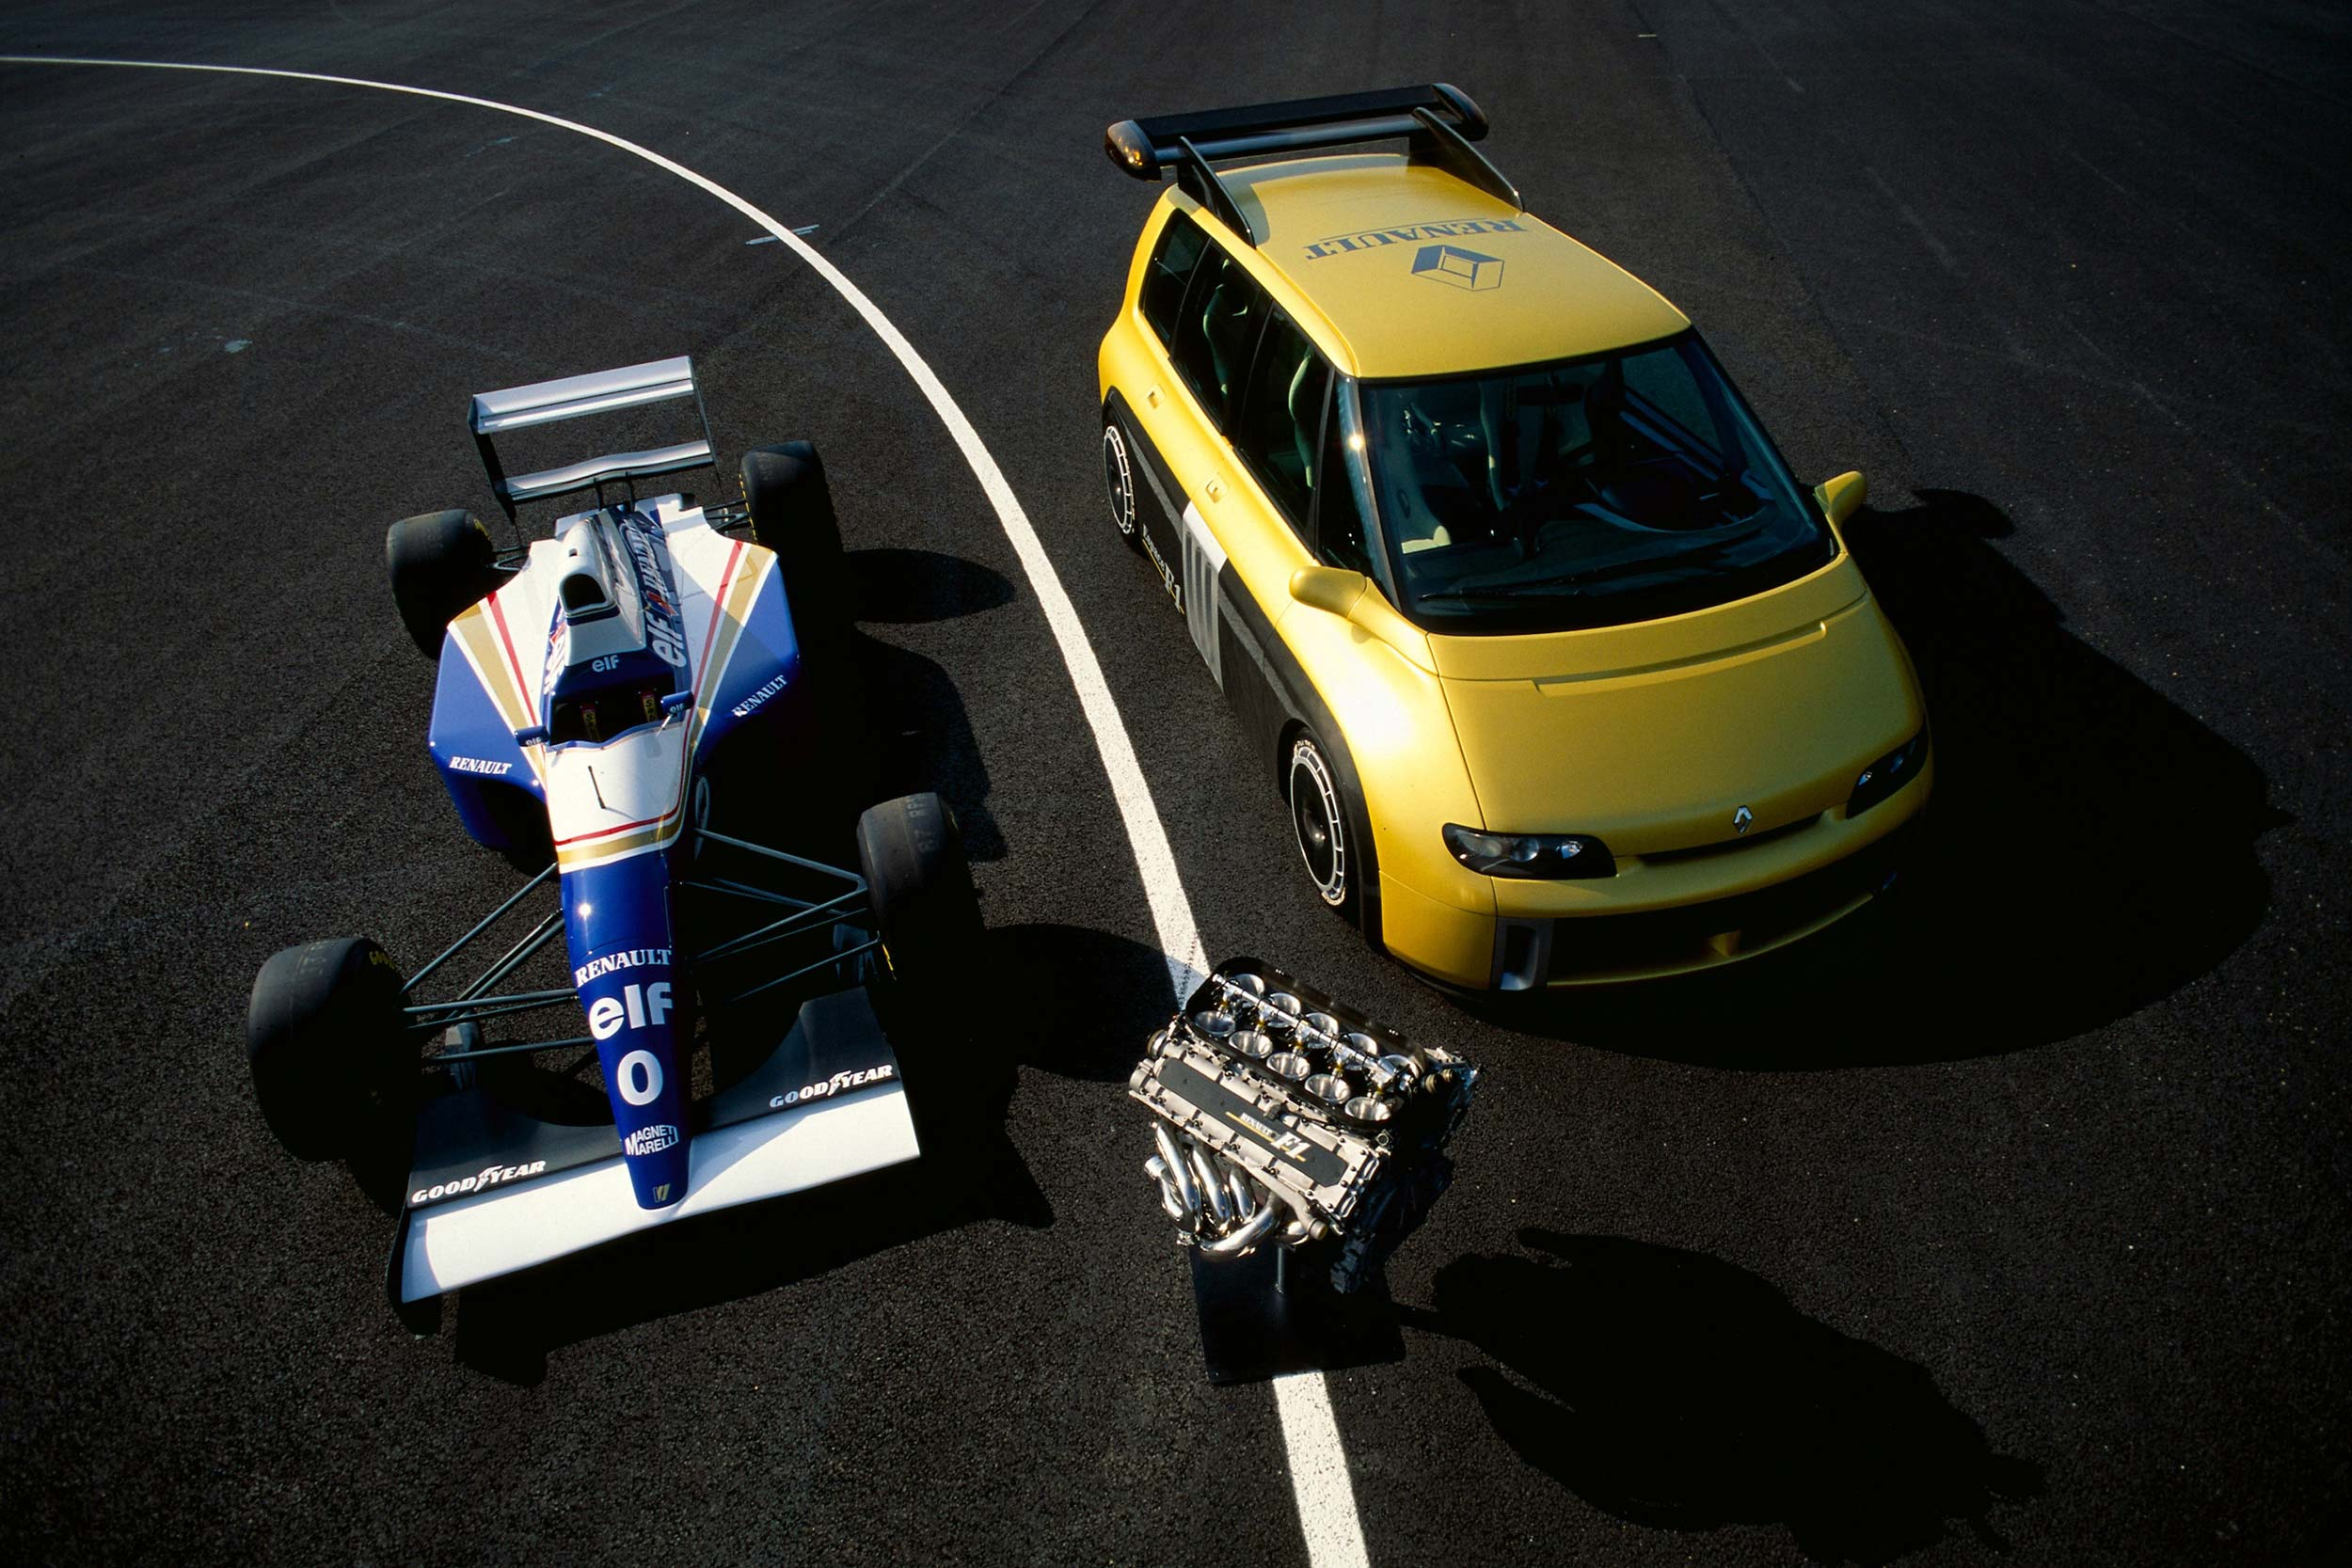 Renault Espace F1 and a Williams-Renault F1 car in September 1994